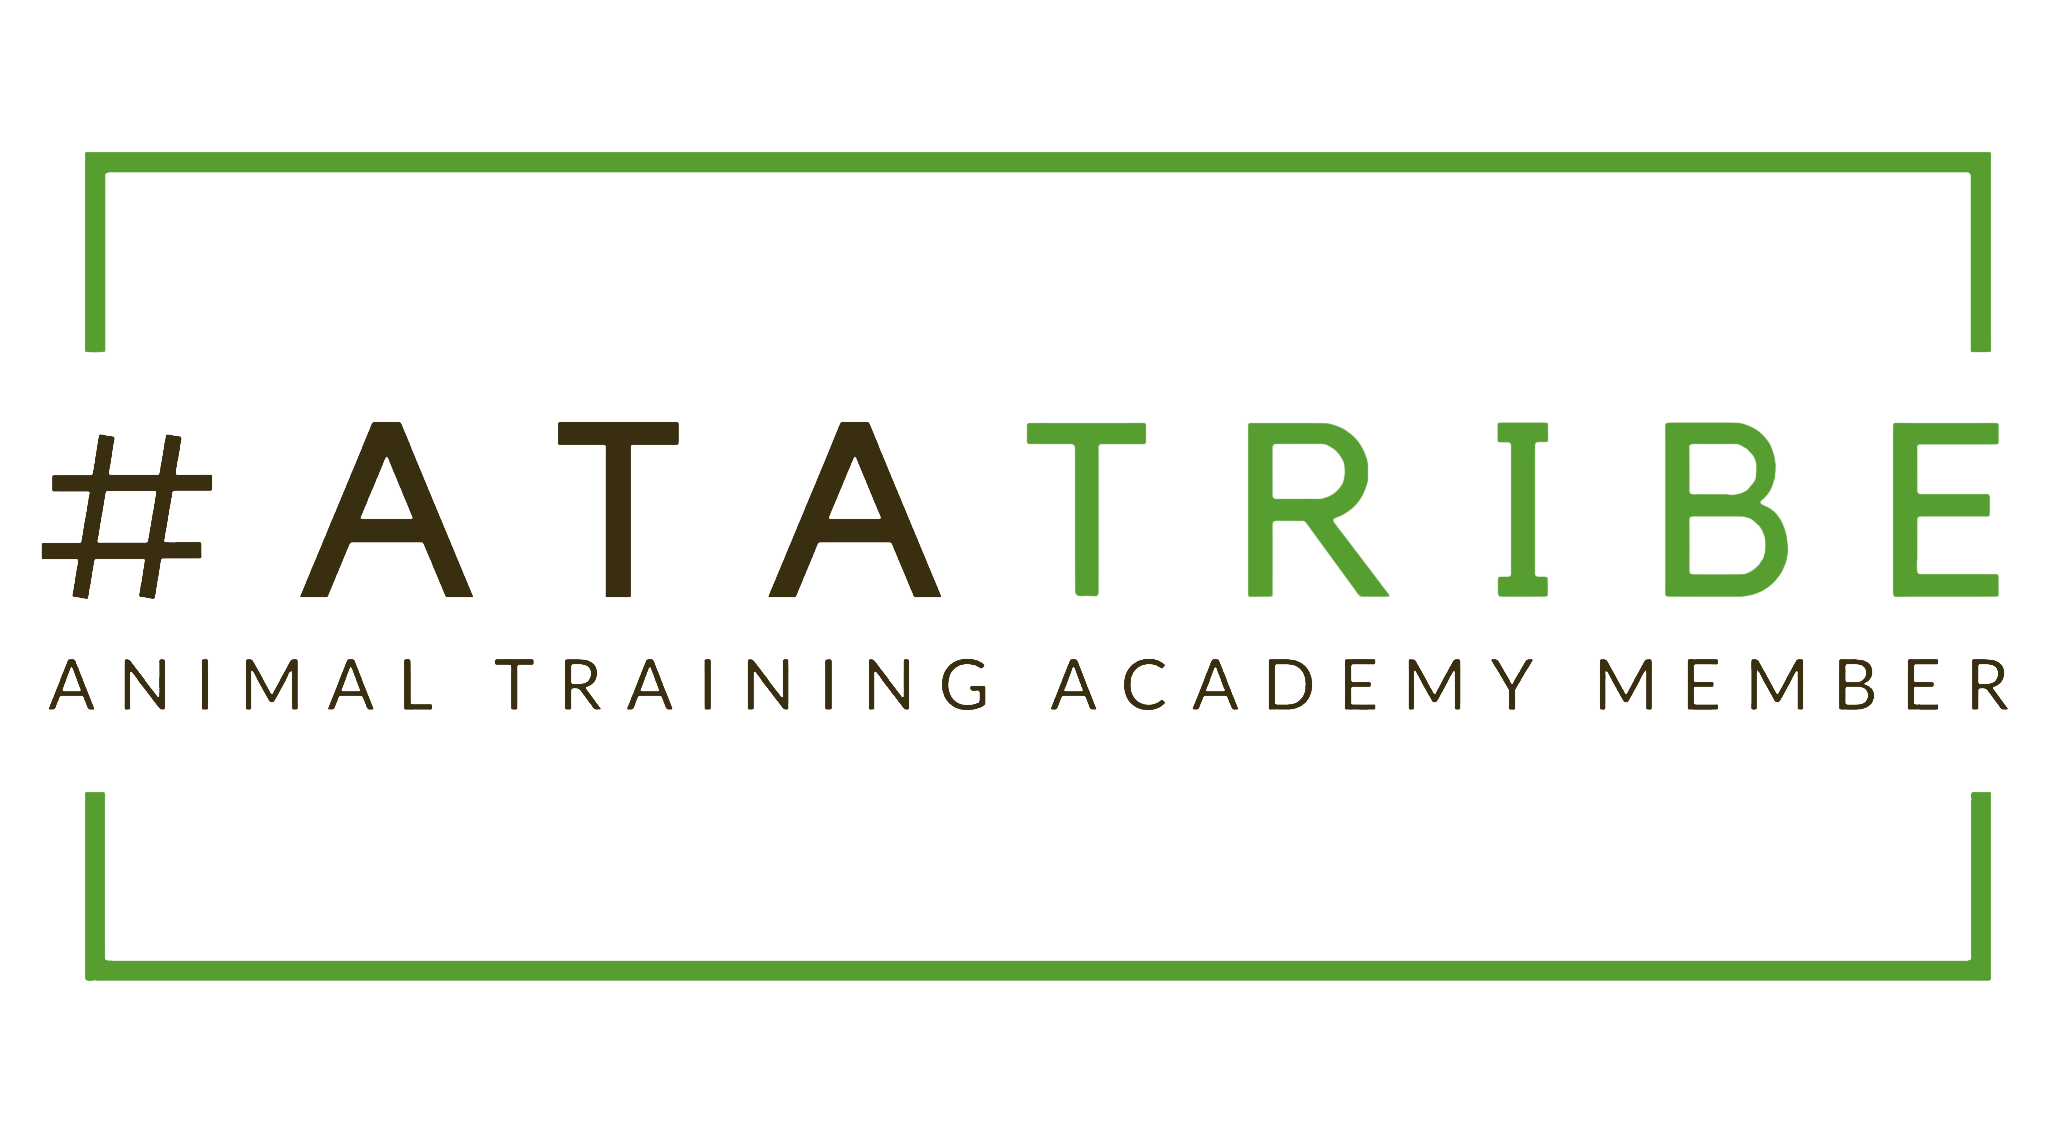 ANIMAL TRAINING ACADEMY MEMBER